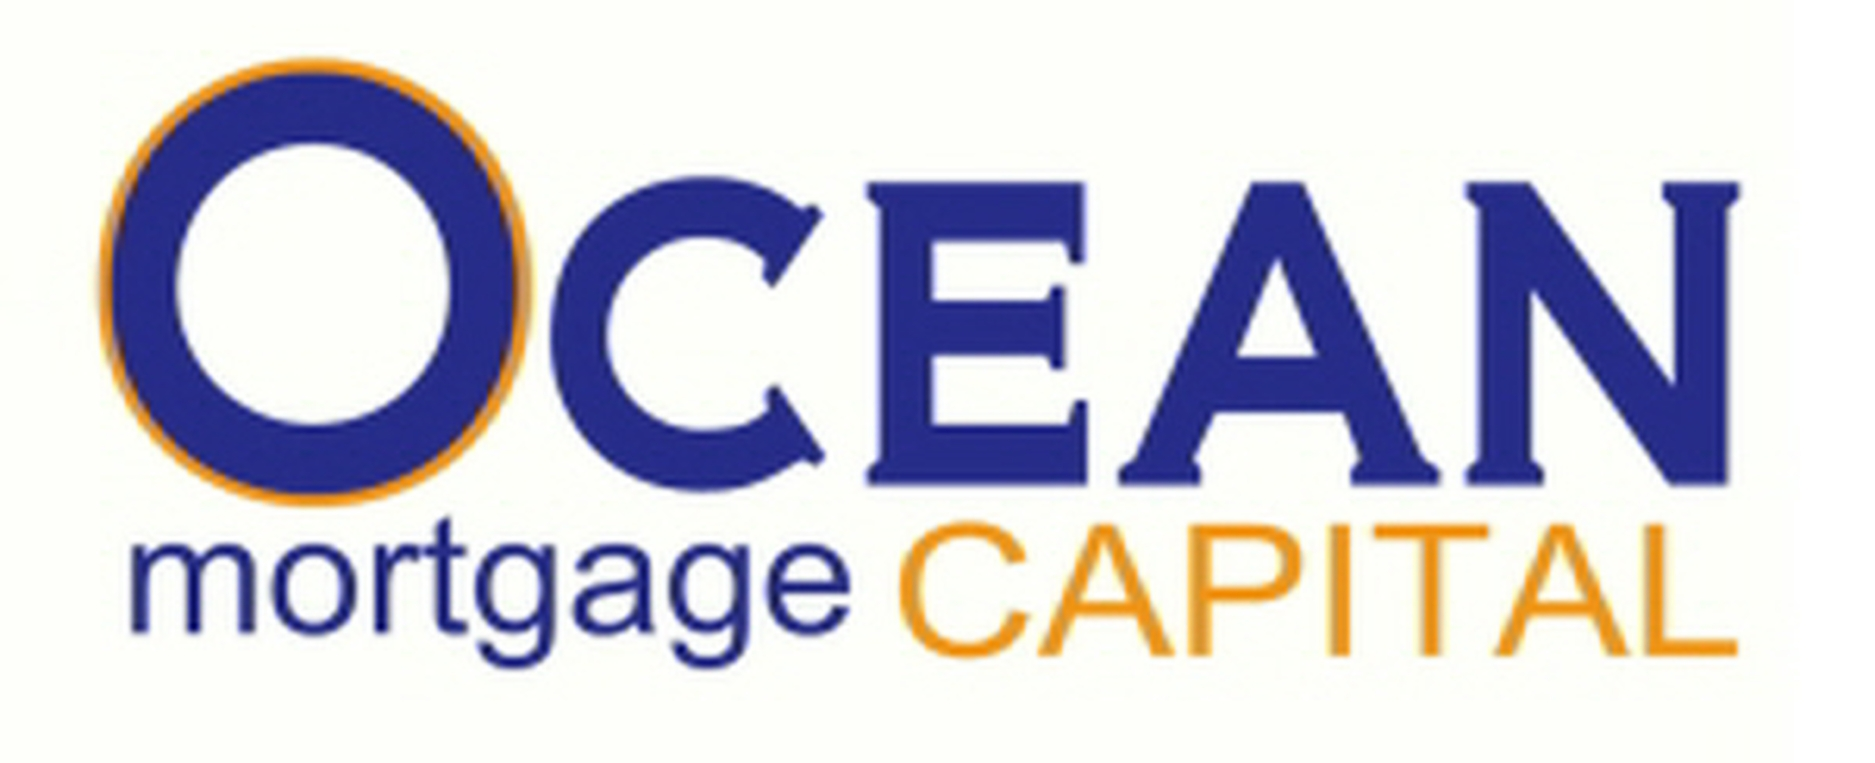 Ocean Mortgage Logo